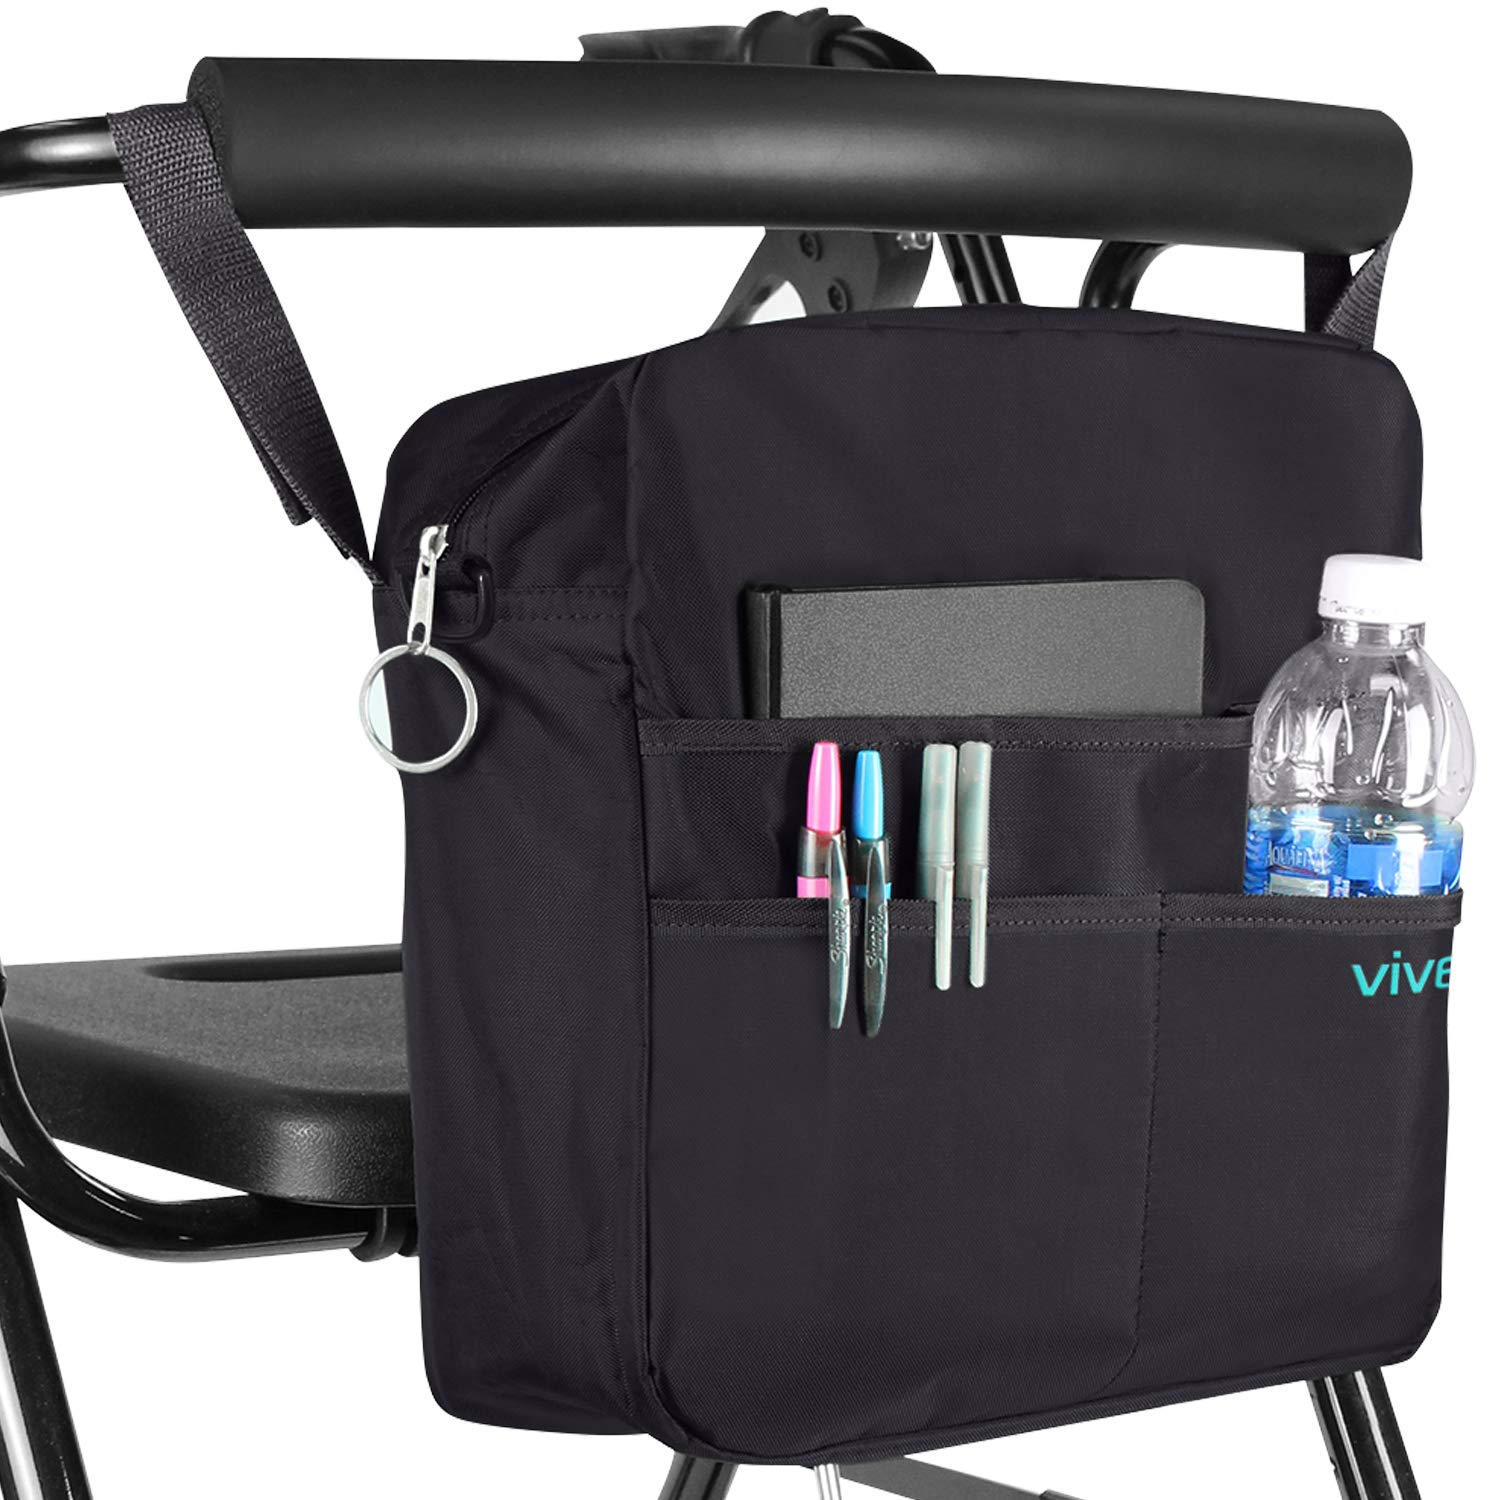 Vive Rollator Bag - Universal Travel Tote for Carrying Accessories on Wheelchair, Rolling Walkers & Transport Chairs - Lightweight Laptop Basket for Handicap, Disabled Medical Mobility Aid, Black by Vive